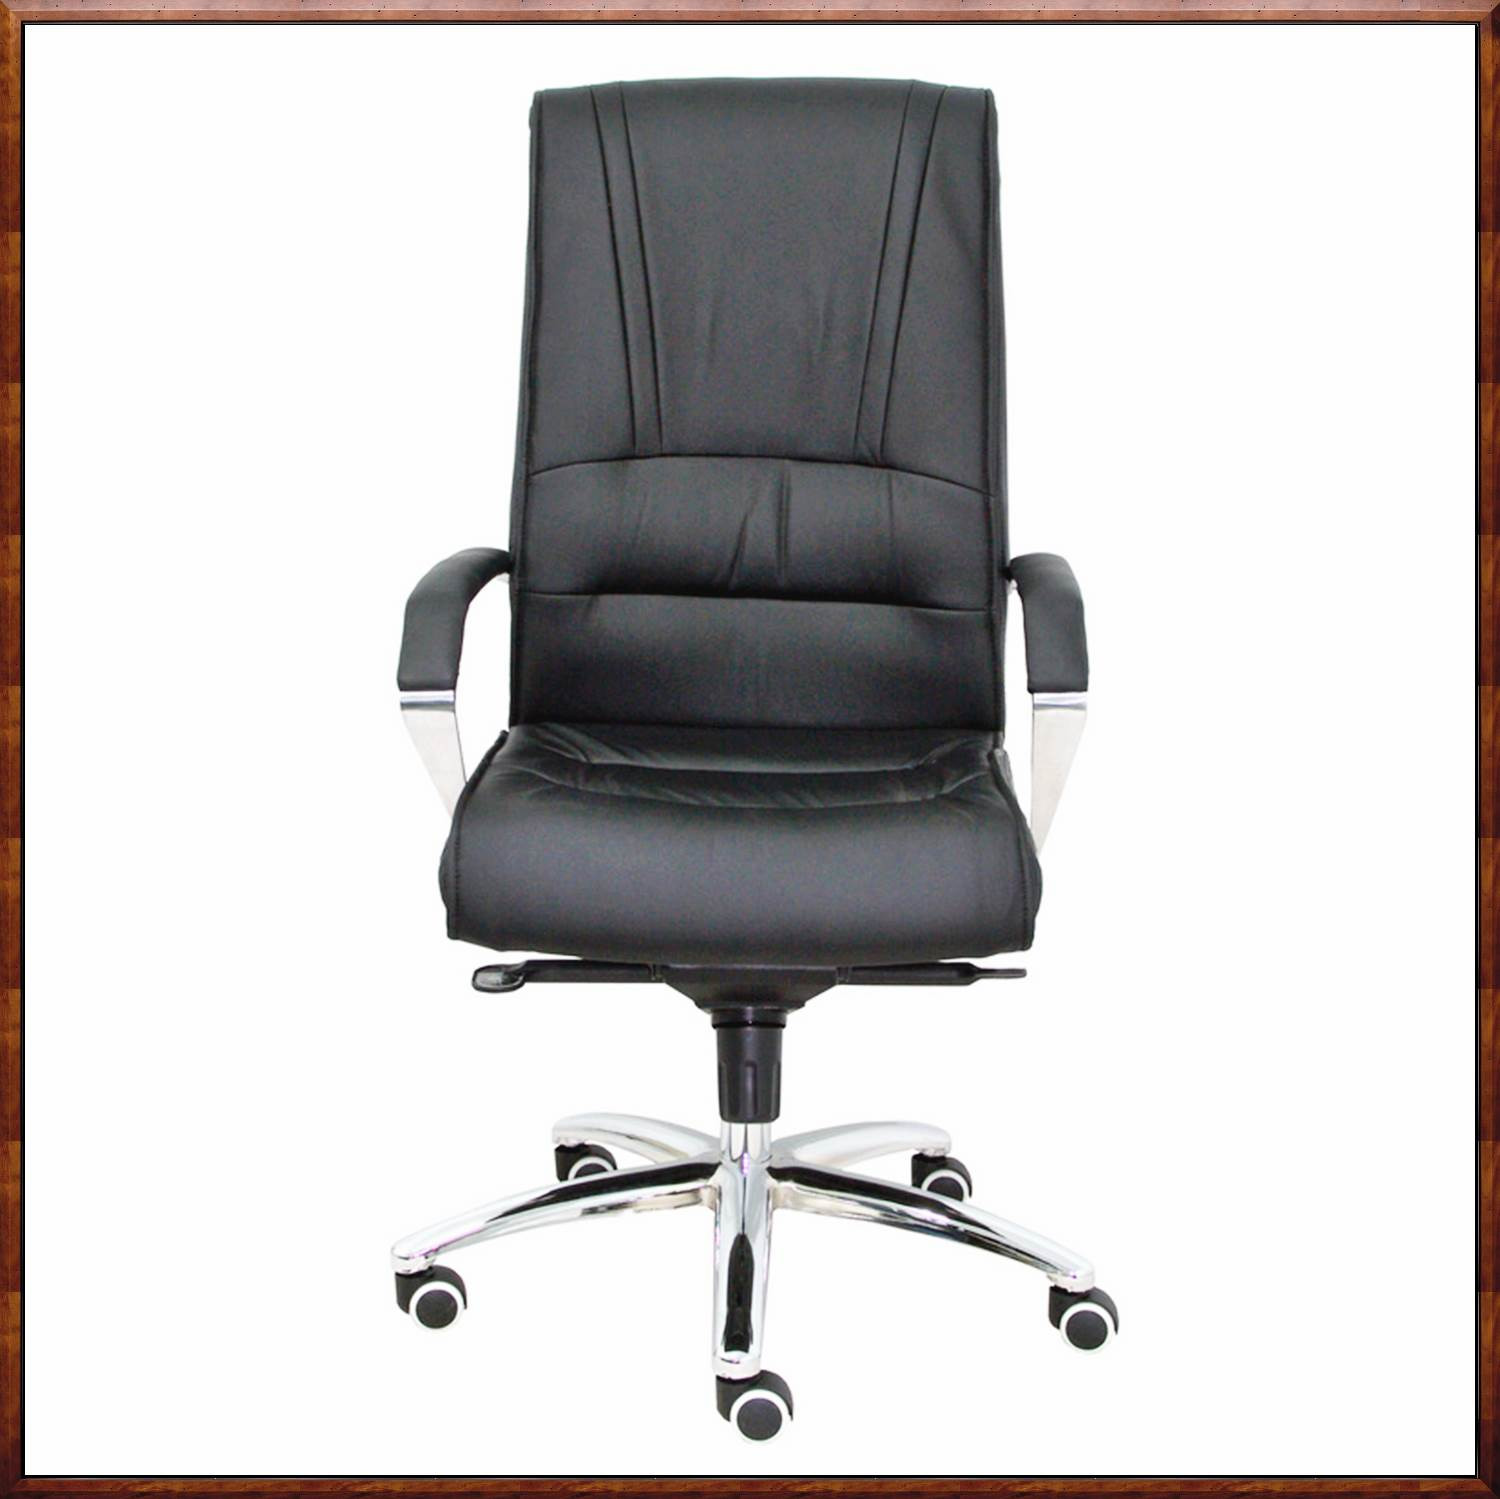 Silla De Director Carrefour Lujo Carrefour Silla Icina Fabulous Css with Carrefour Silla Of Silla De Director Carrefour Encantador Carrefour Sillas Icina Beautiful Mosquitera Universal